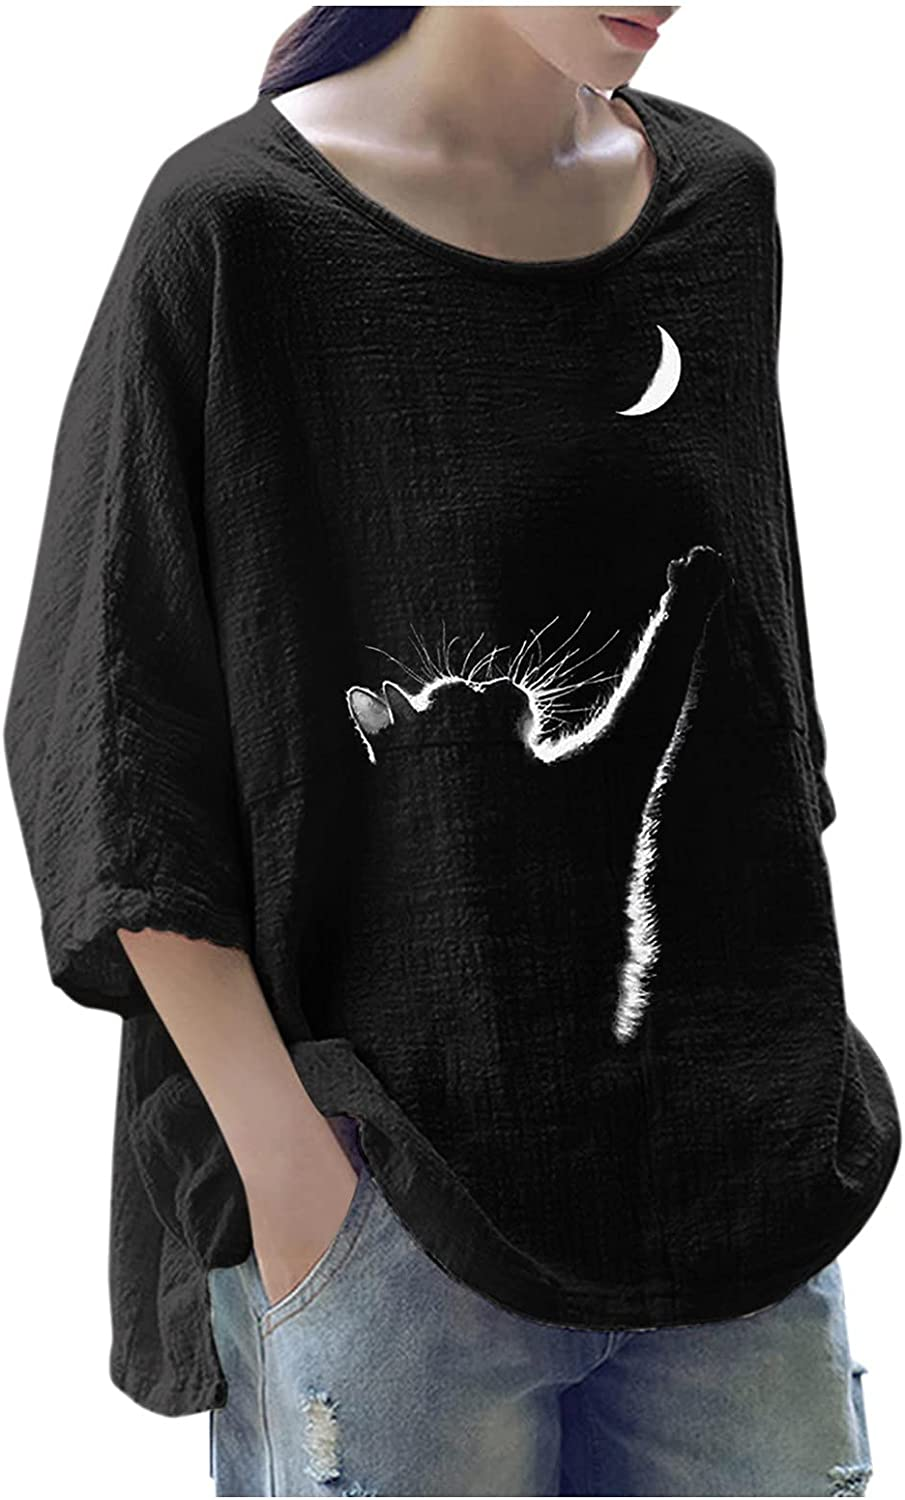 Women's Plus Size 3/4 Sleeve Tees Cotton Linen Tops Loose Fit Floral Casual Shirt Boatneck Comfortable Tunic Blouses